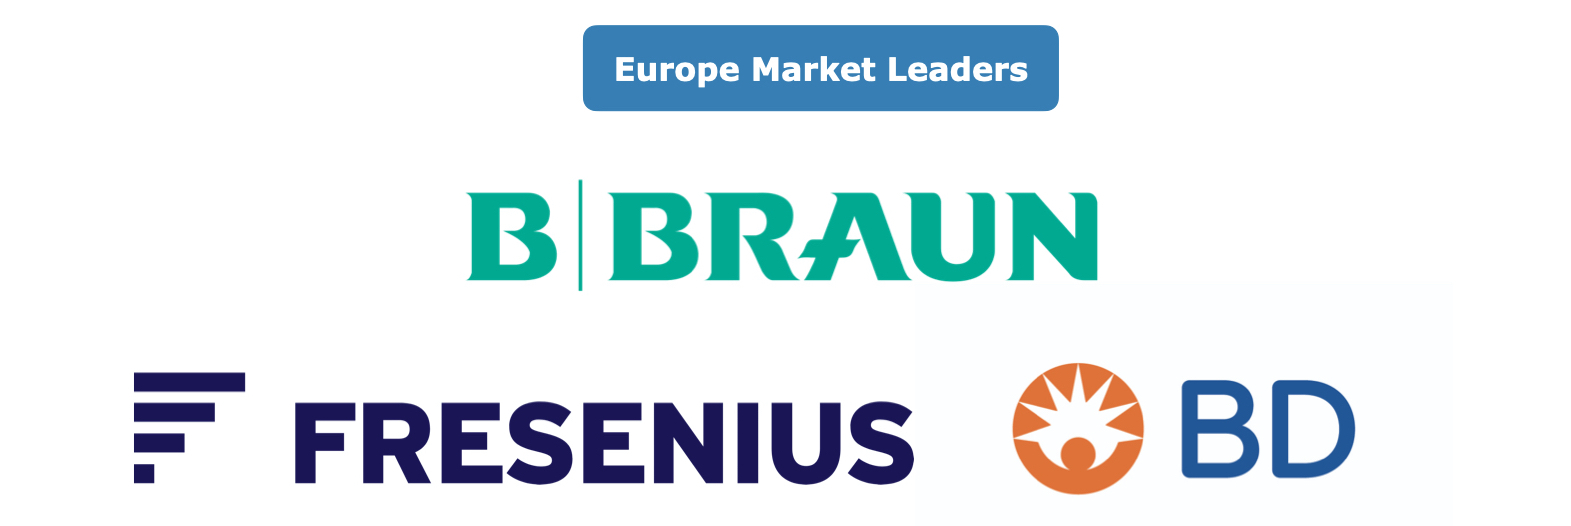 EU Infusion Therapy Market Share Leaders